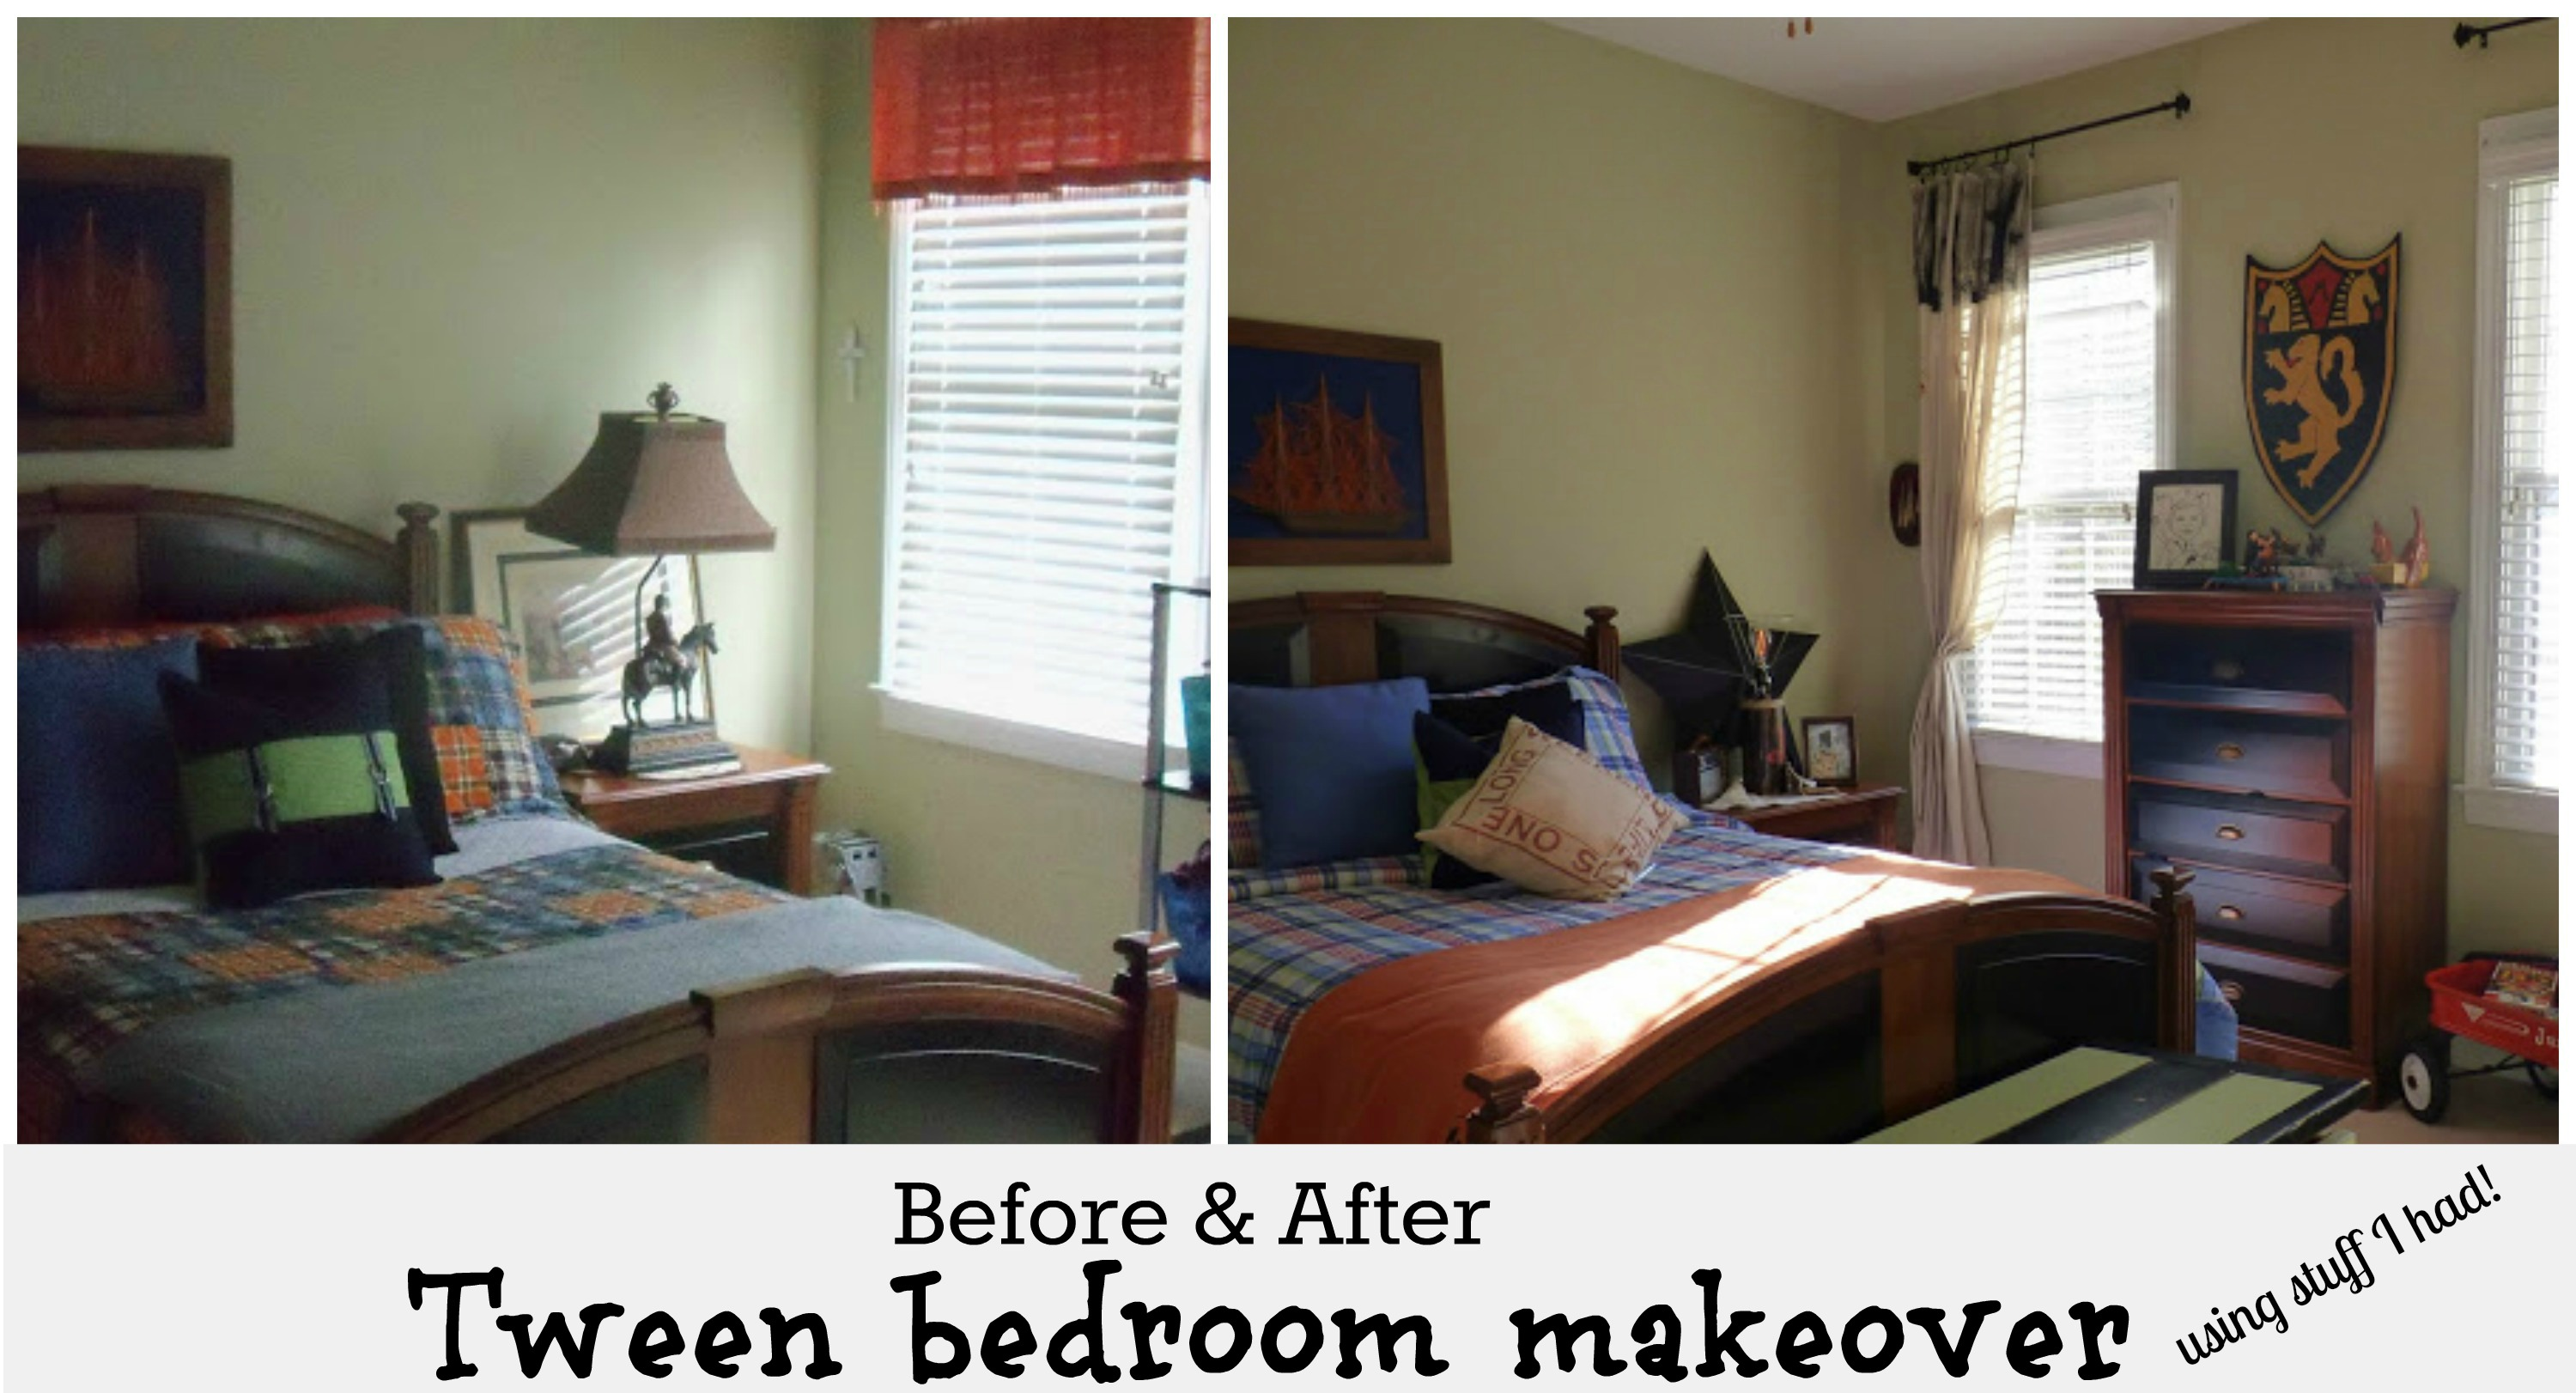 Boys bedroom before and after makeover on a budget using things I already had